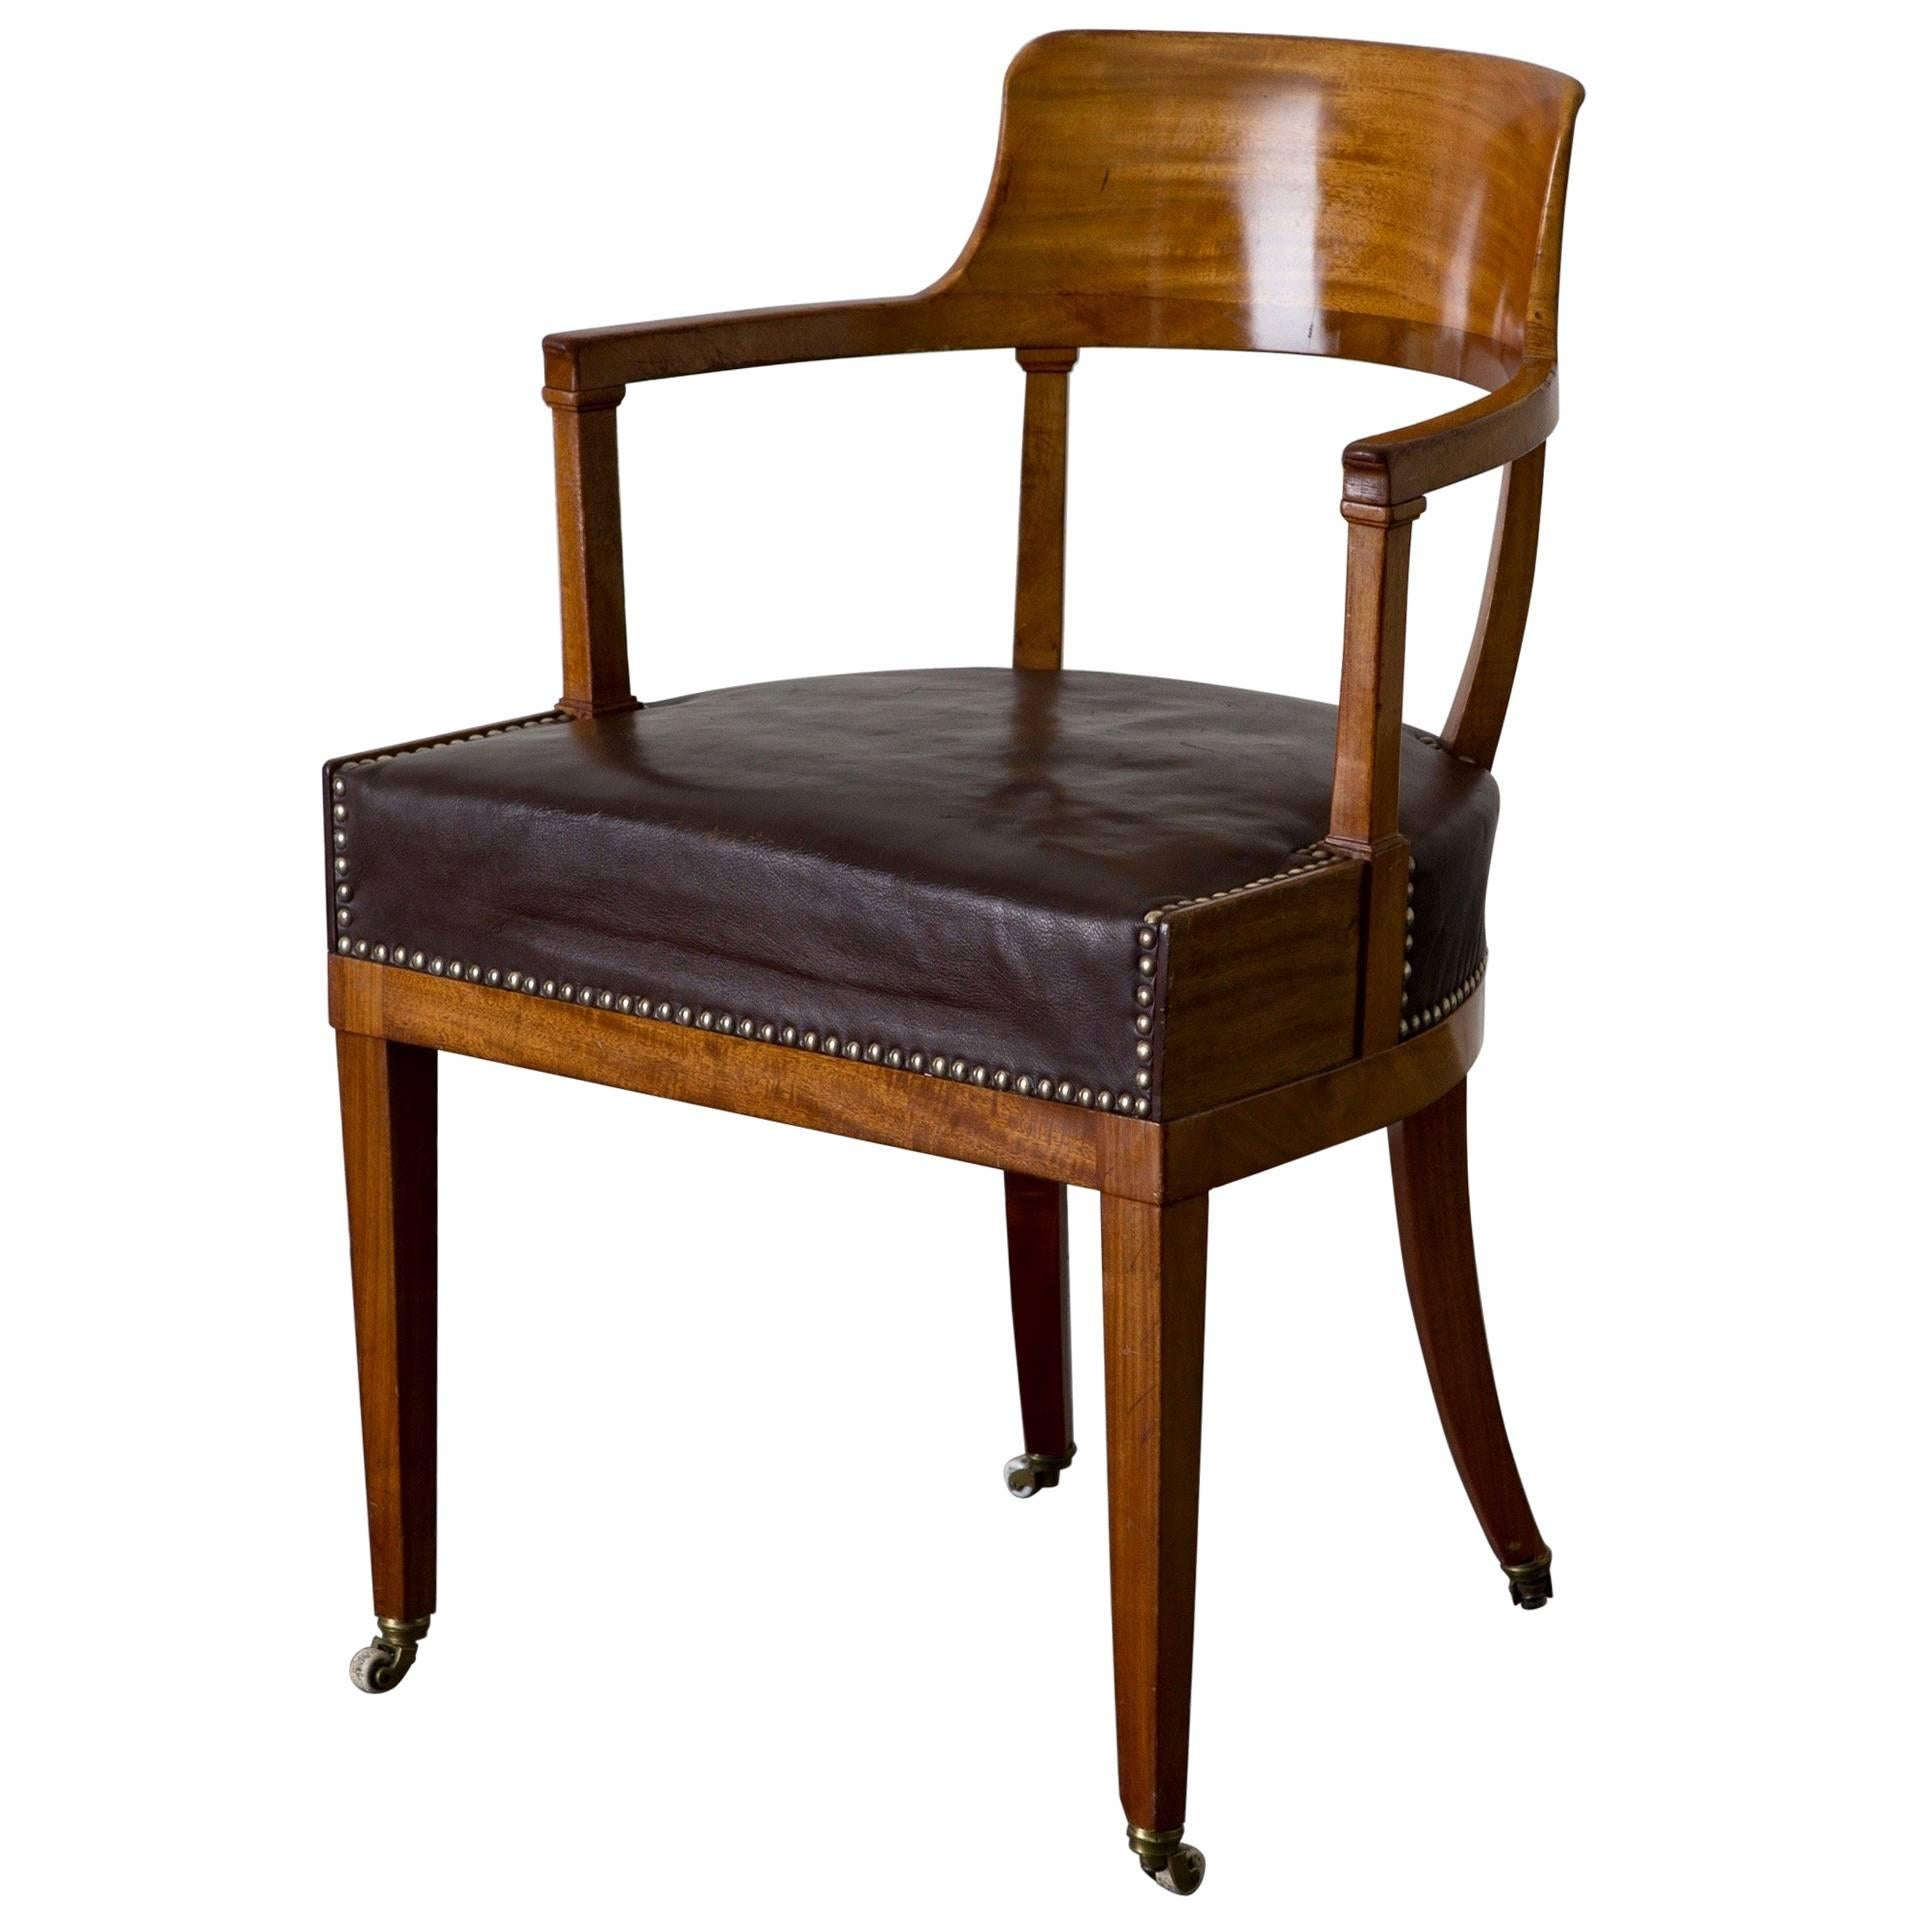 desk chair made large round swivel swedish karl johan empire 19th century sweden for sale